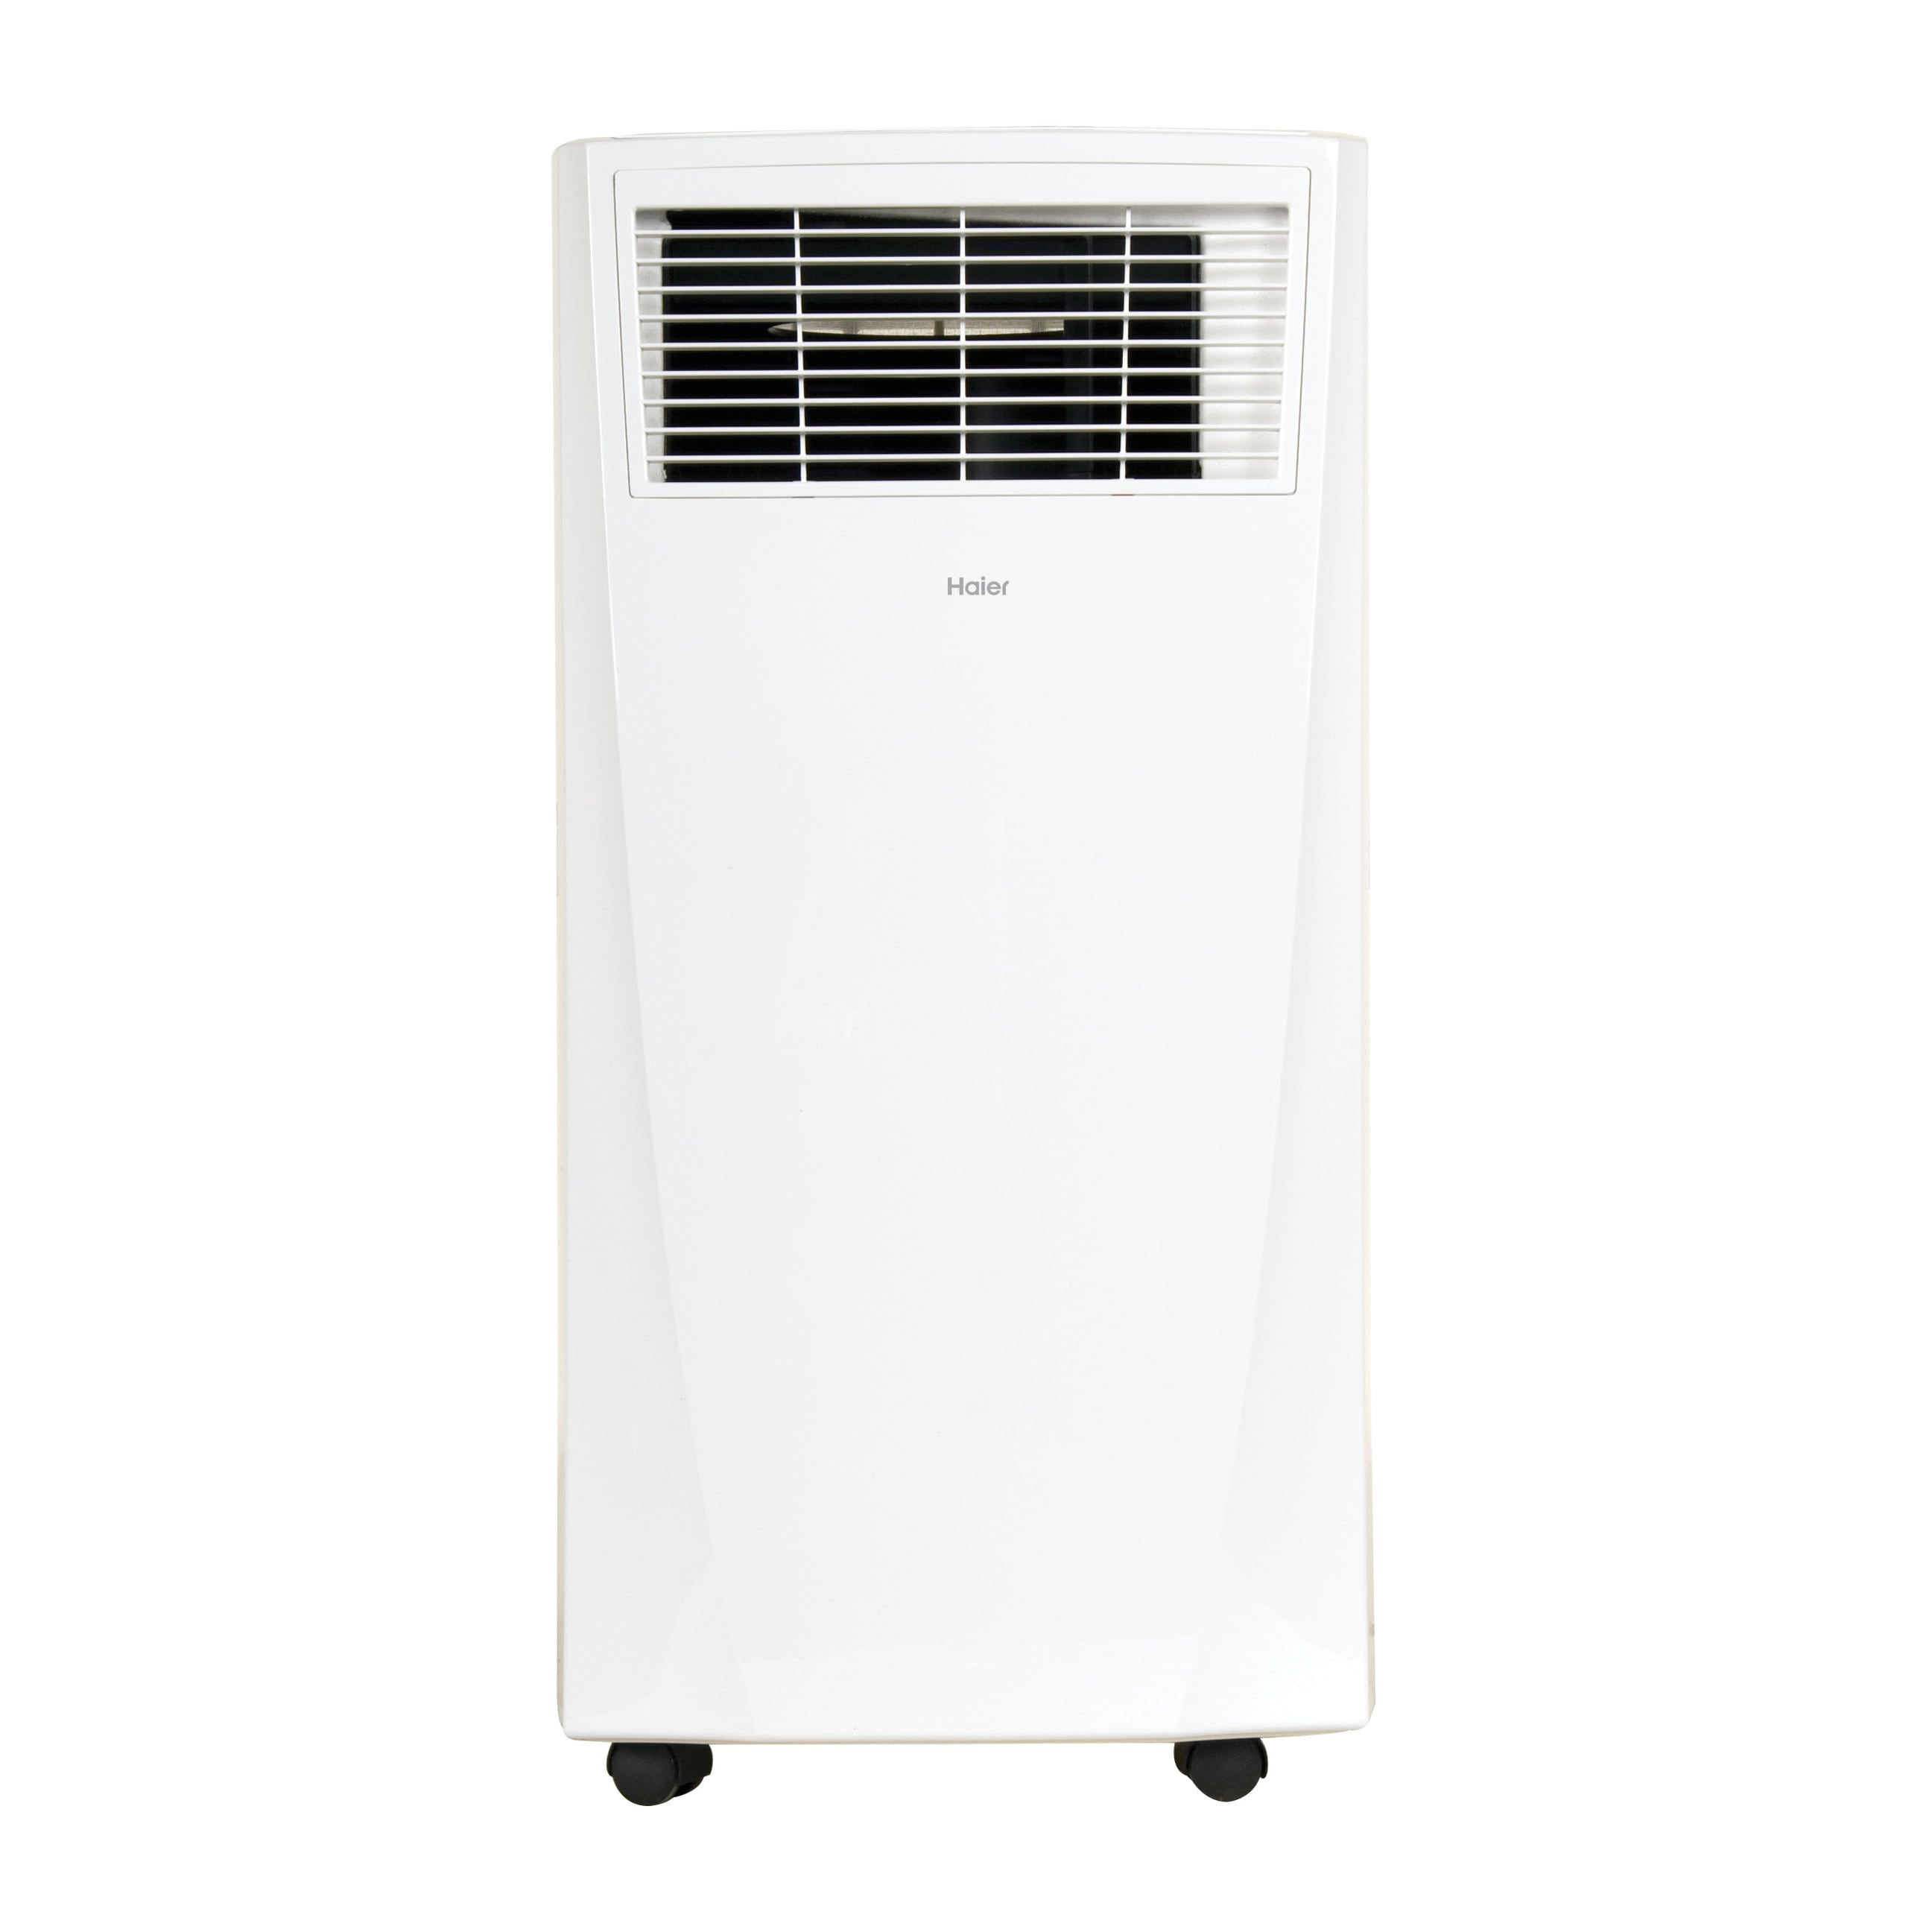 #6F6A5C Haier 10000 BTU Portable Air Conditioner EBay 2017 13842 Room Air Conditioner Filters photo with 2593x2593 px on helpvideos.info - Air Conditioners, Air Coolers and more